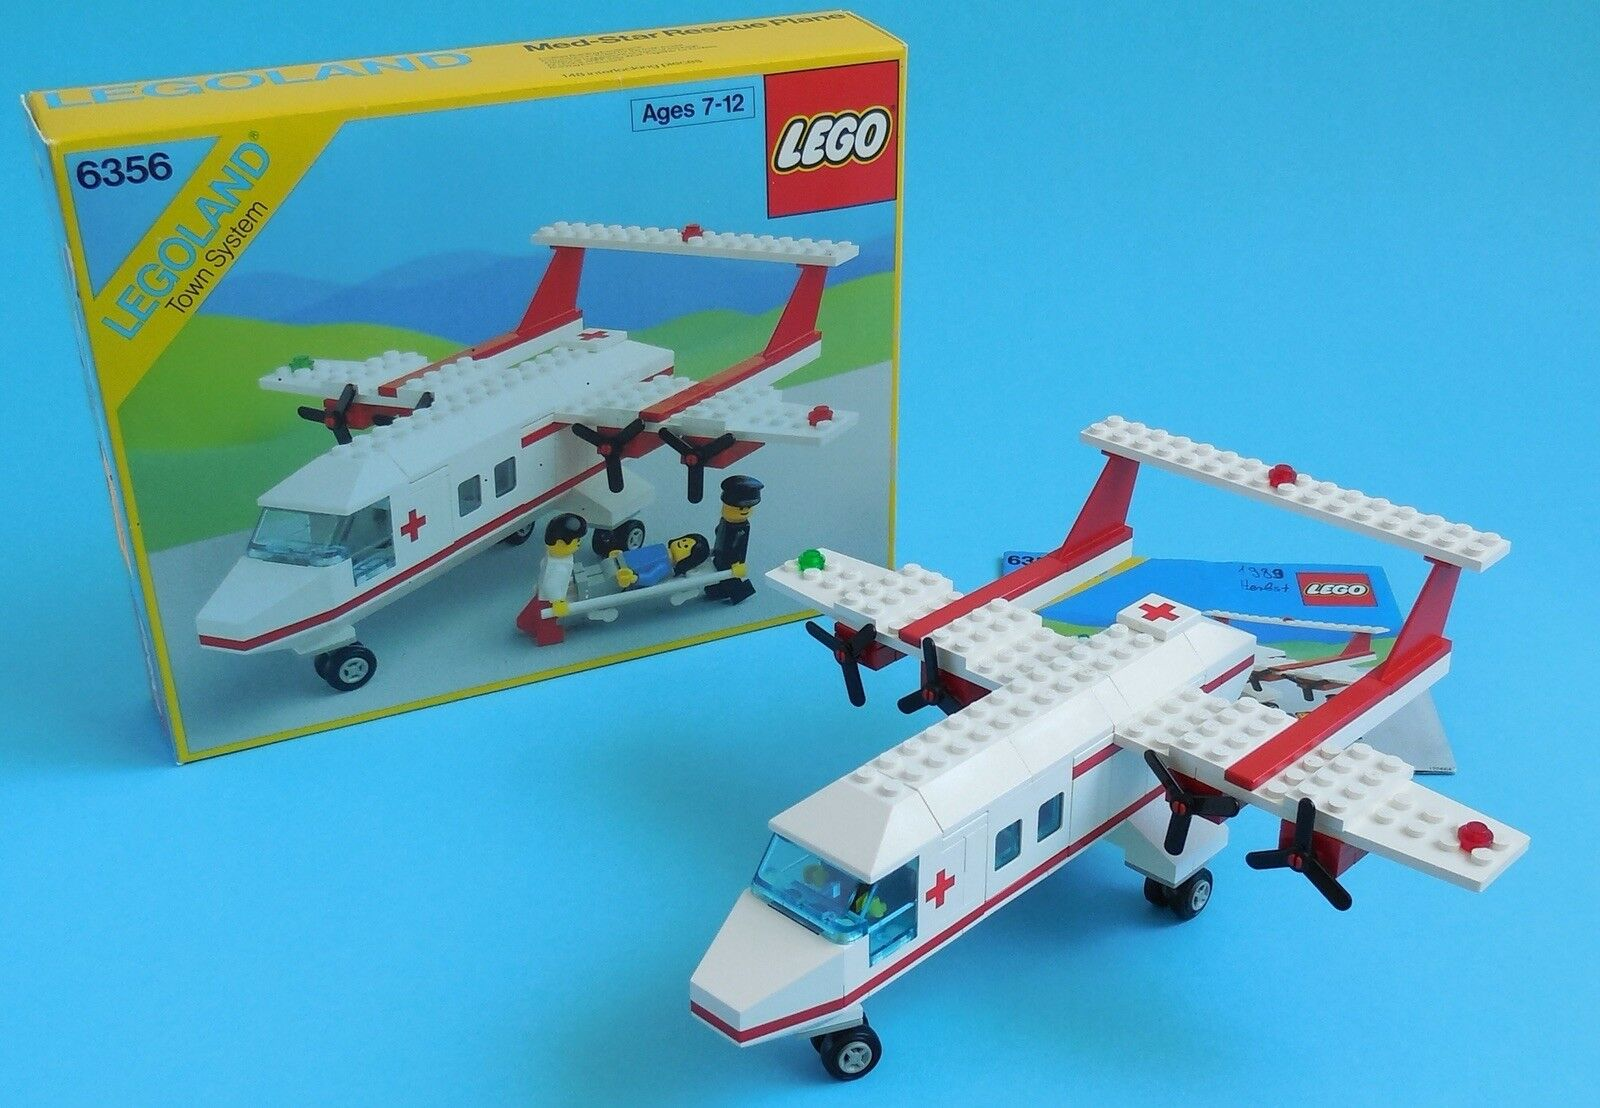 VTG LEGO Town Classic Med-Star Rescue Plane 6356 - 100% complete w/box & manual